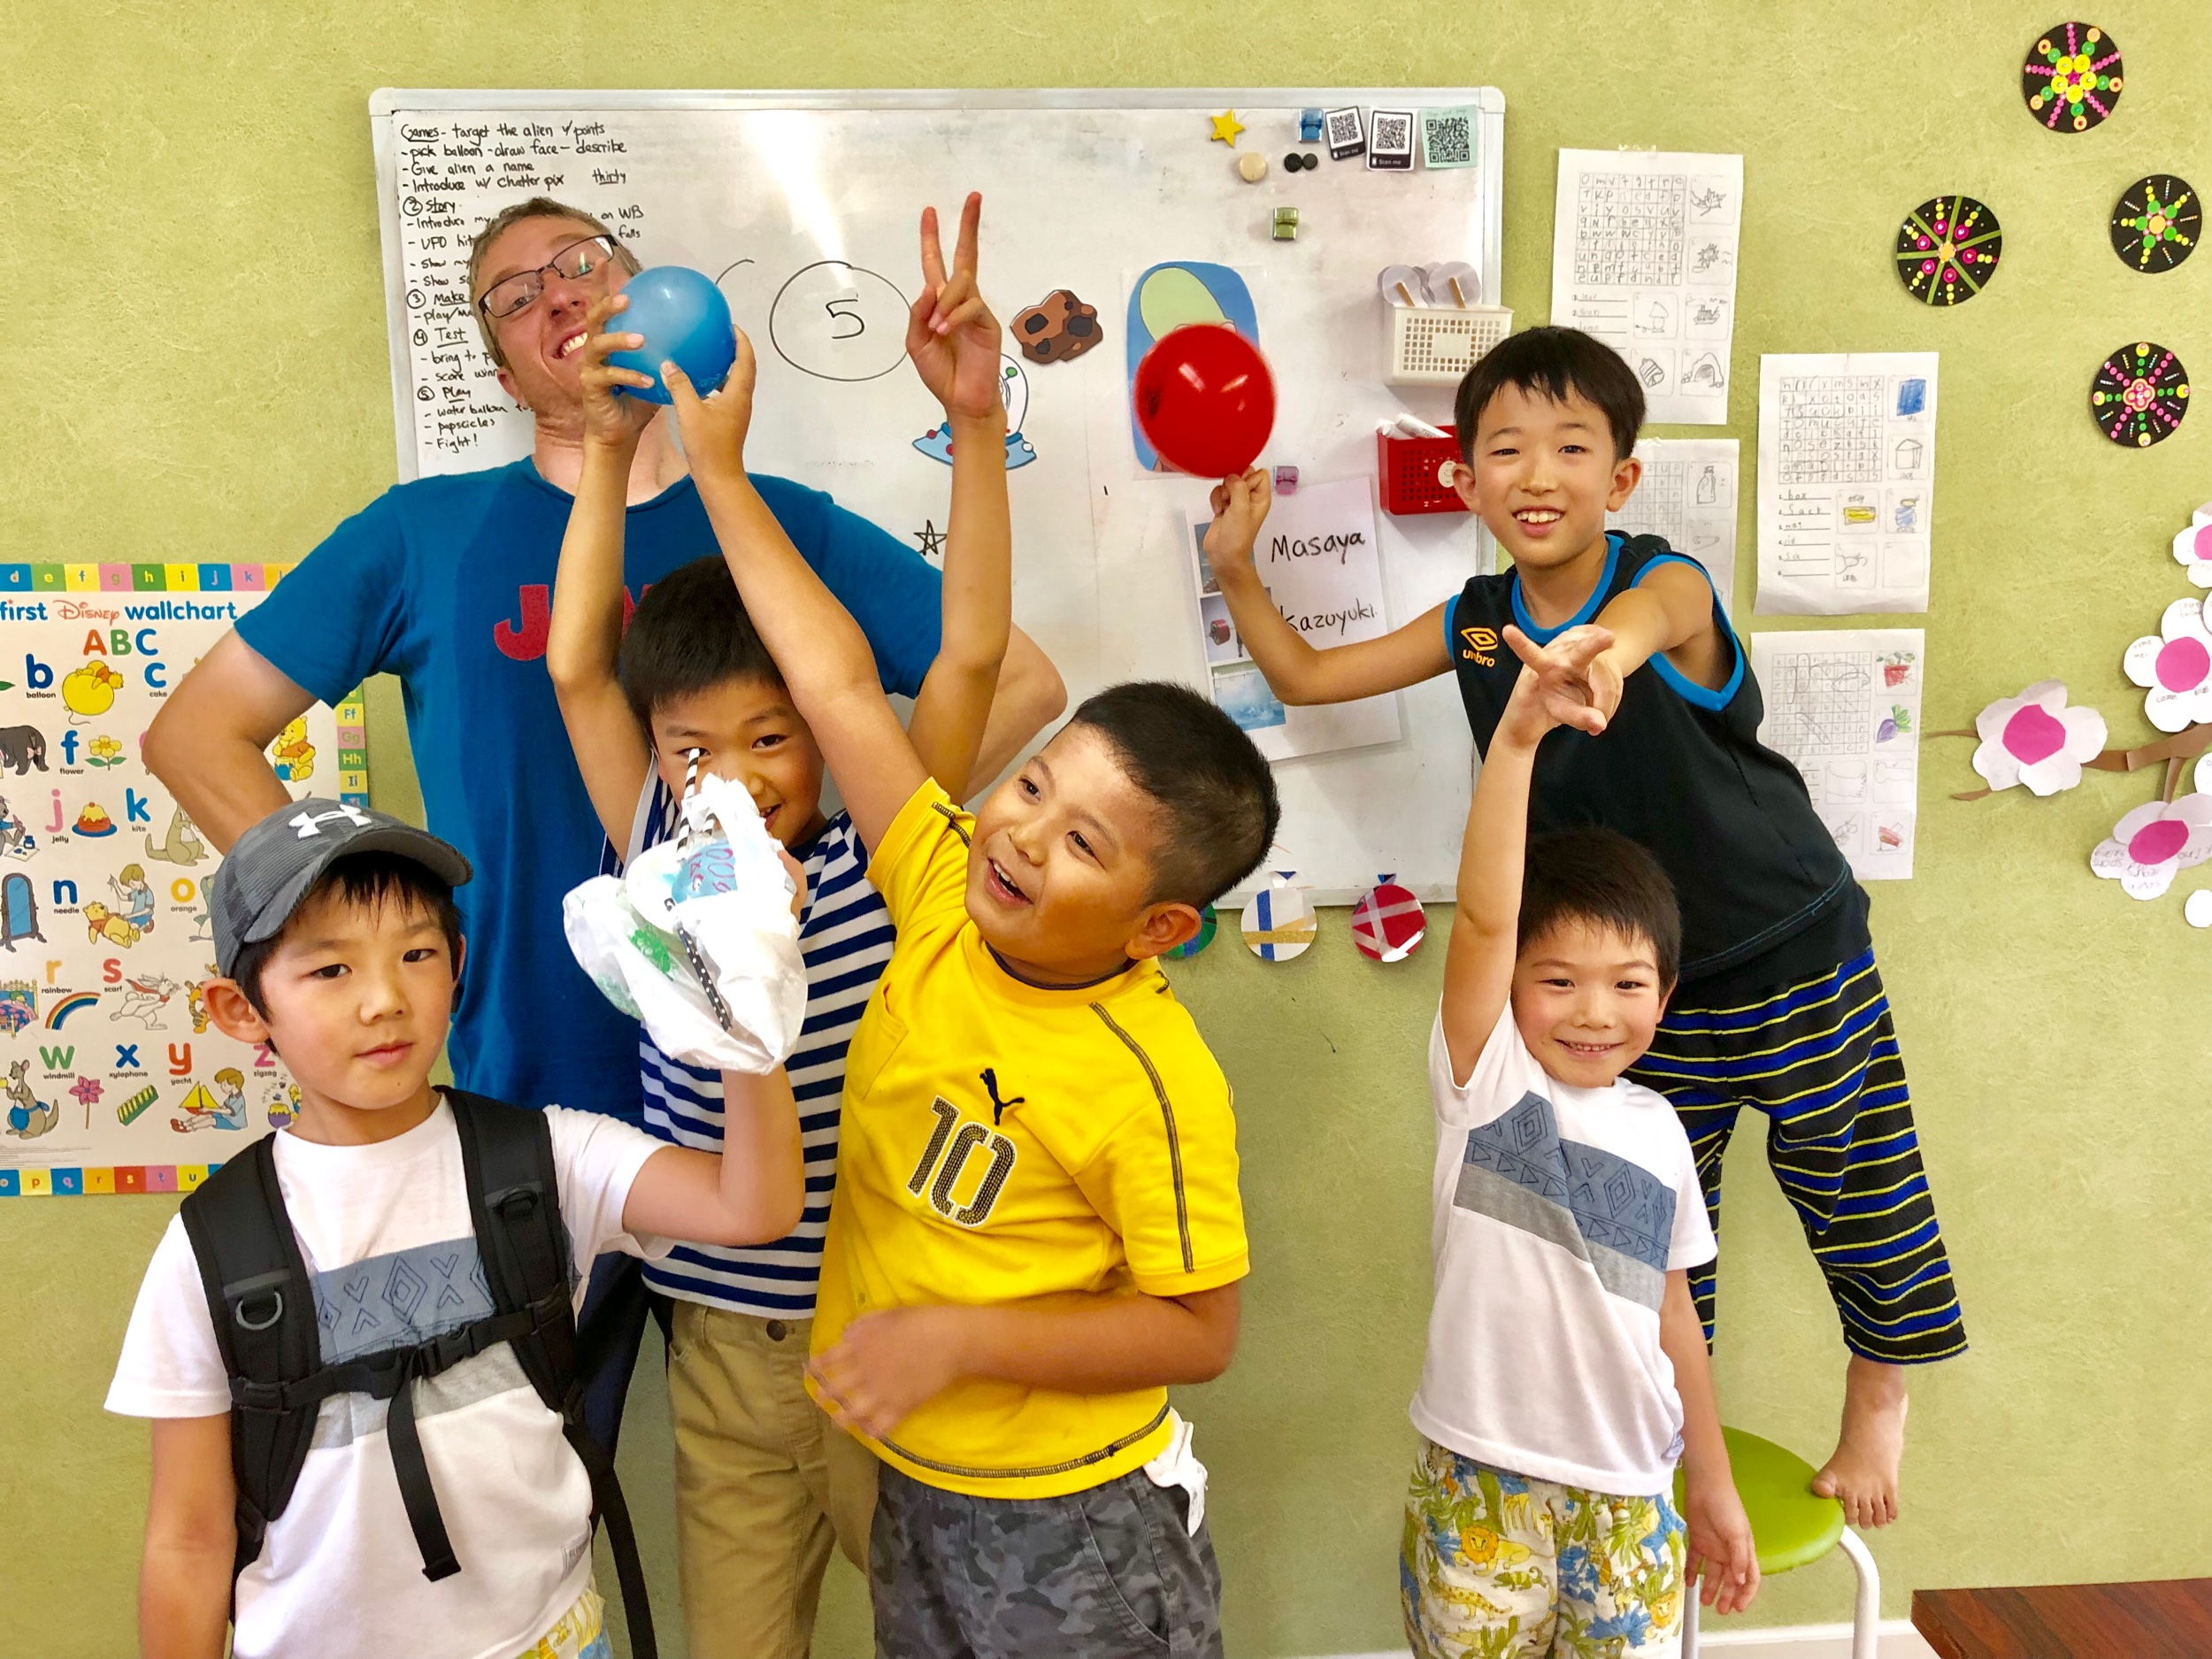 ブログ - Find out more about our classroom here!